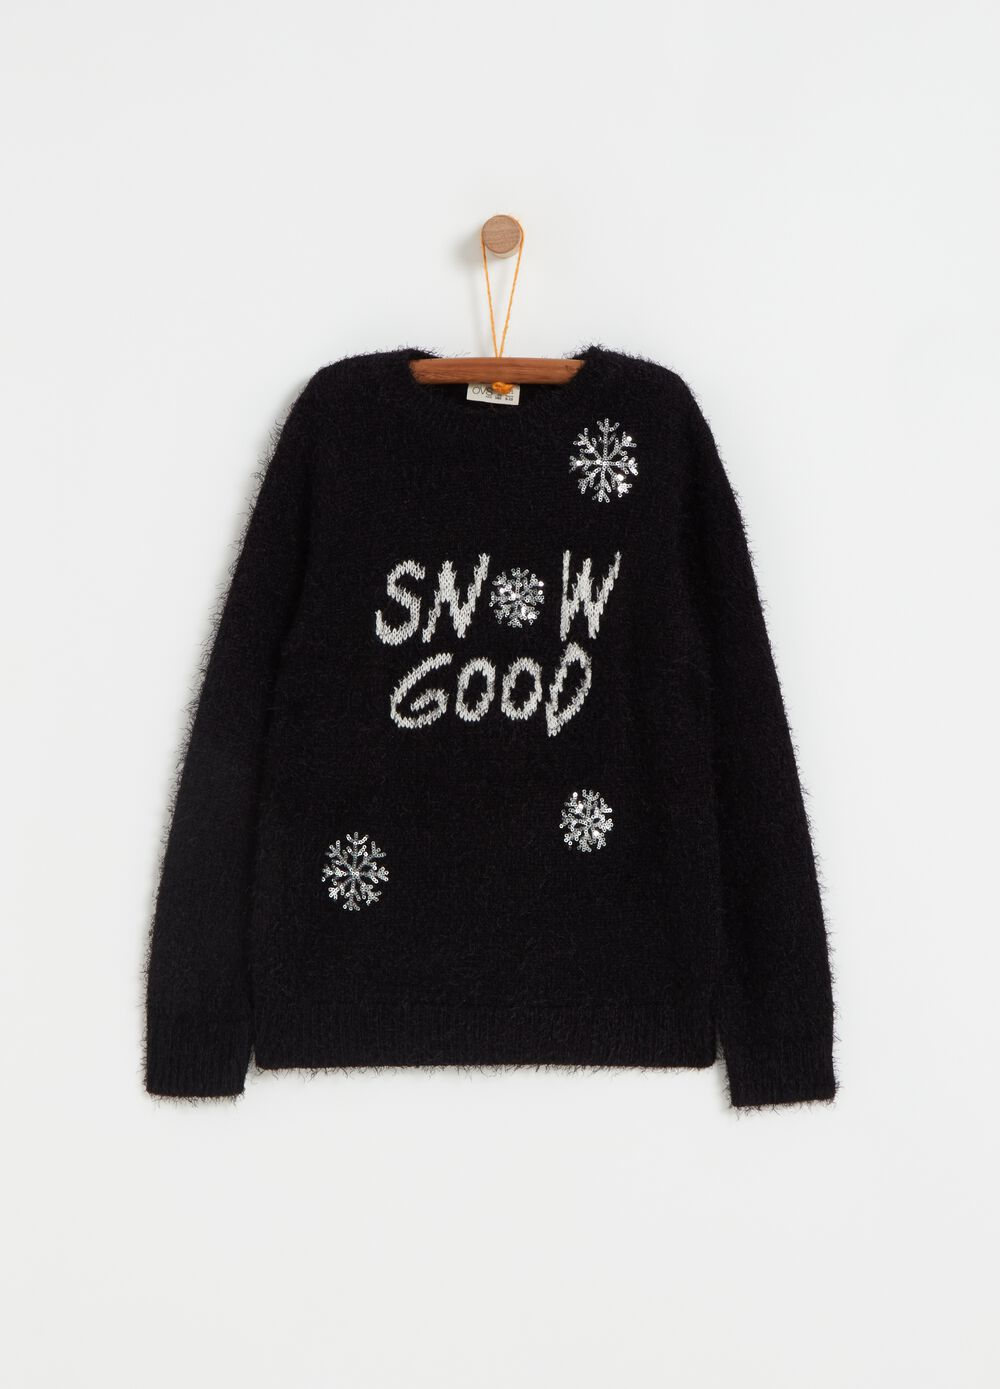 Knitted pullover with snowflake embroidery